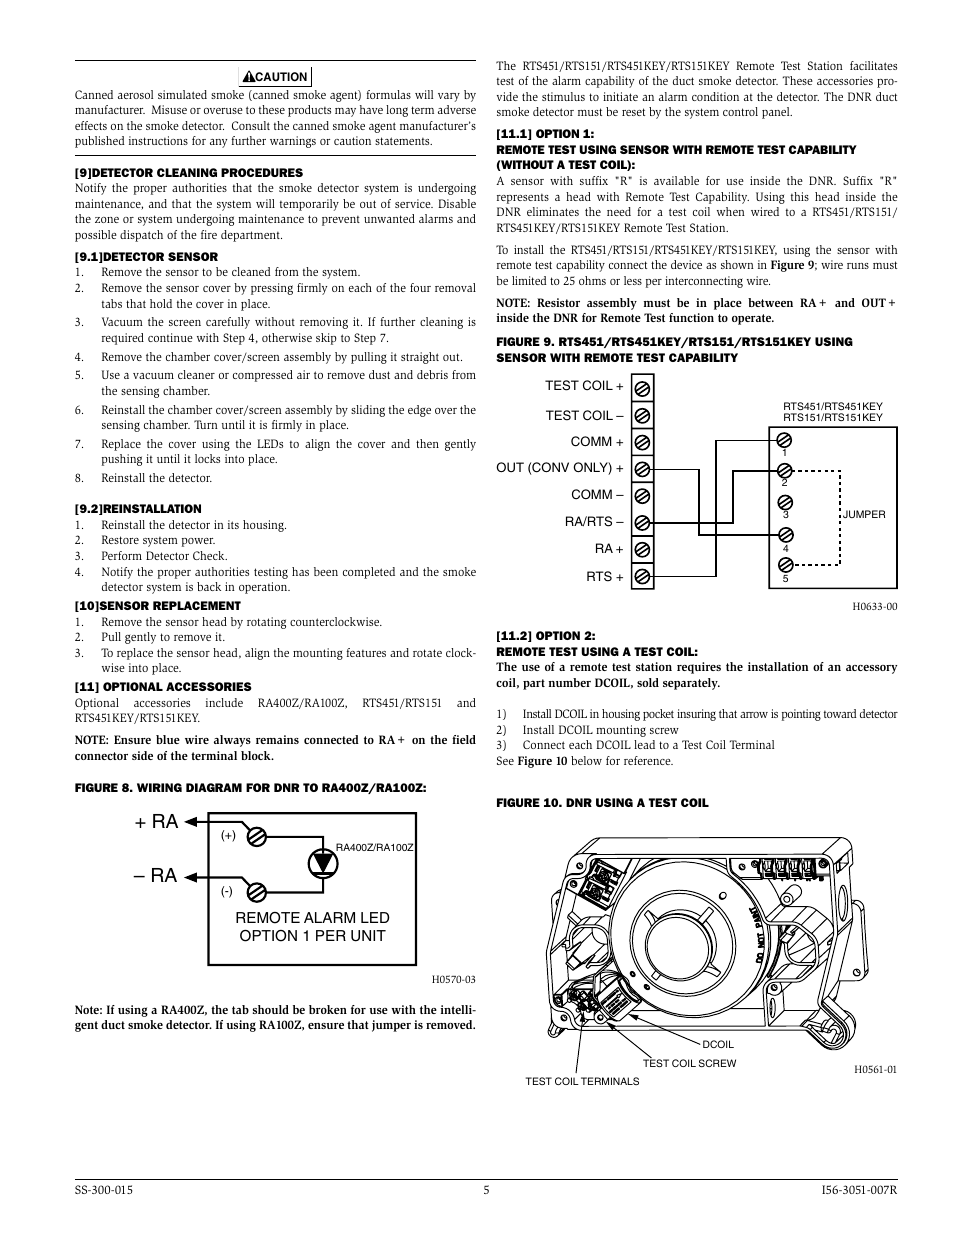 system sensor dnr page5 ra ra system sensor dnr user manual page 5 6 system sensor dnr wiring diagram at edmiracle.co